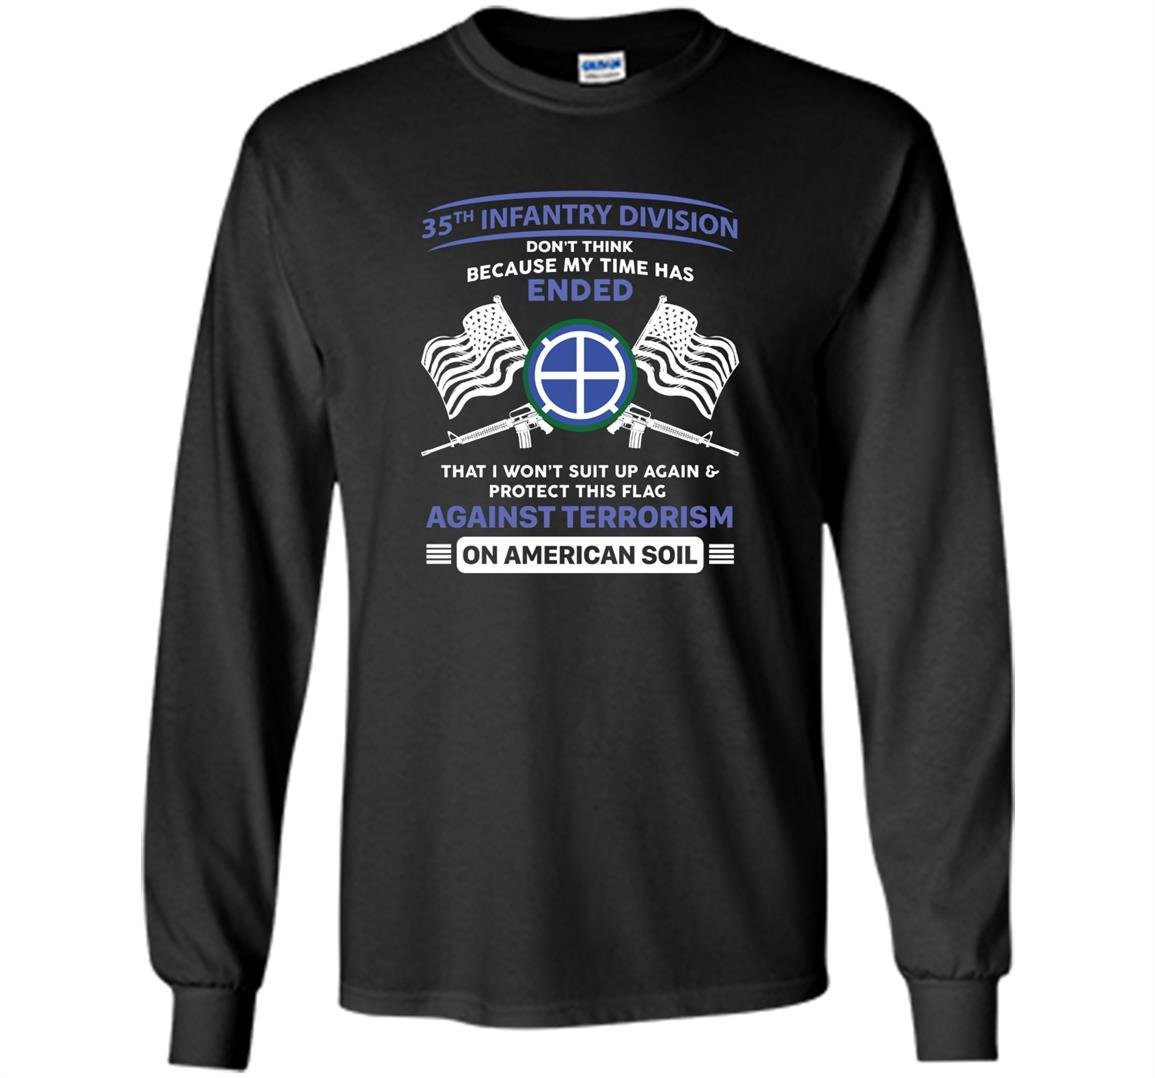 Against terrorism 35th infantry division veteran Long Sleeve